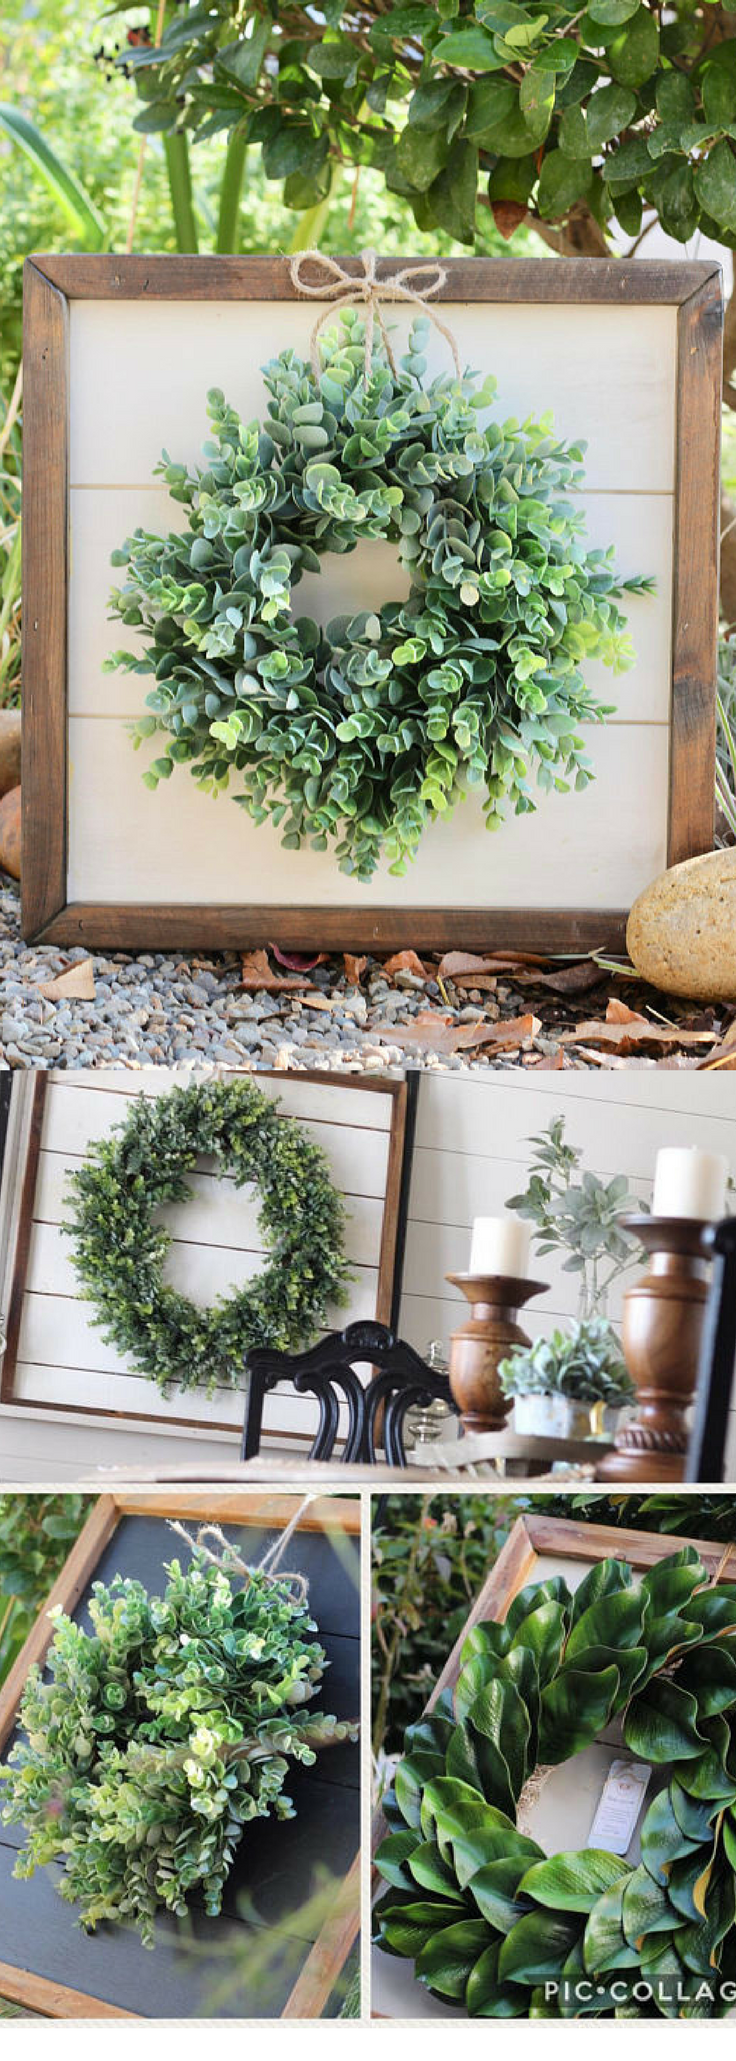 Shiplap Art & Mini Eucalyptus OR Magnolia Wreath - Small 15x15 - Reclaimed Wood - Handmade - Farmhouse - Home Decor - Custom Pieces - Spring - Fixer Upper Style - Rustic #ad #DIYHomeDecorSpring #style #shopping #styles #outfit #pretty #girl #girls #beauty #beautiful #me #cute #stylish #photooftheday #swag #dress #shoes #diy #design #fashion #homedecor